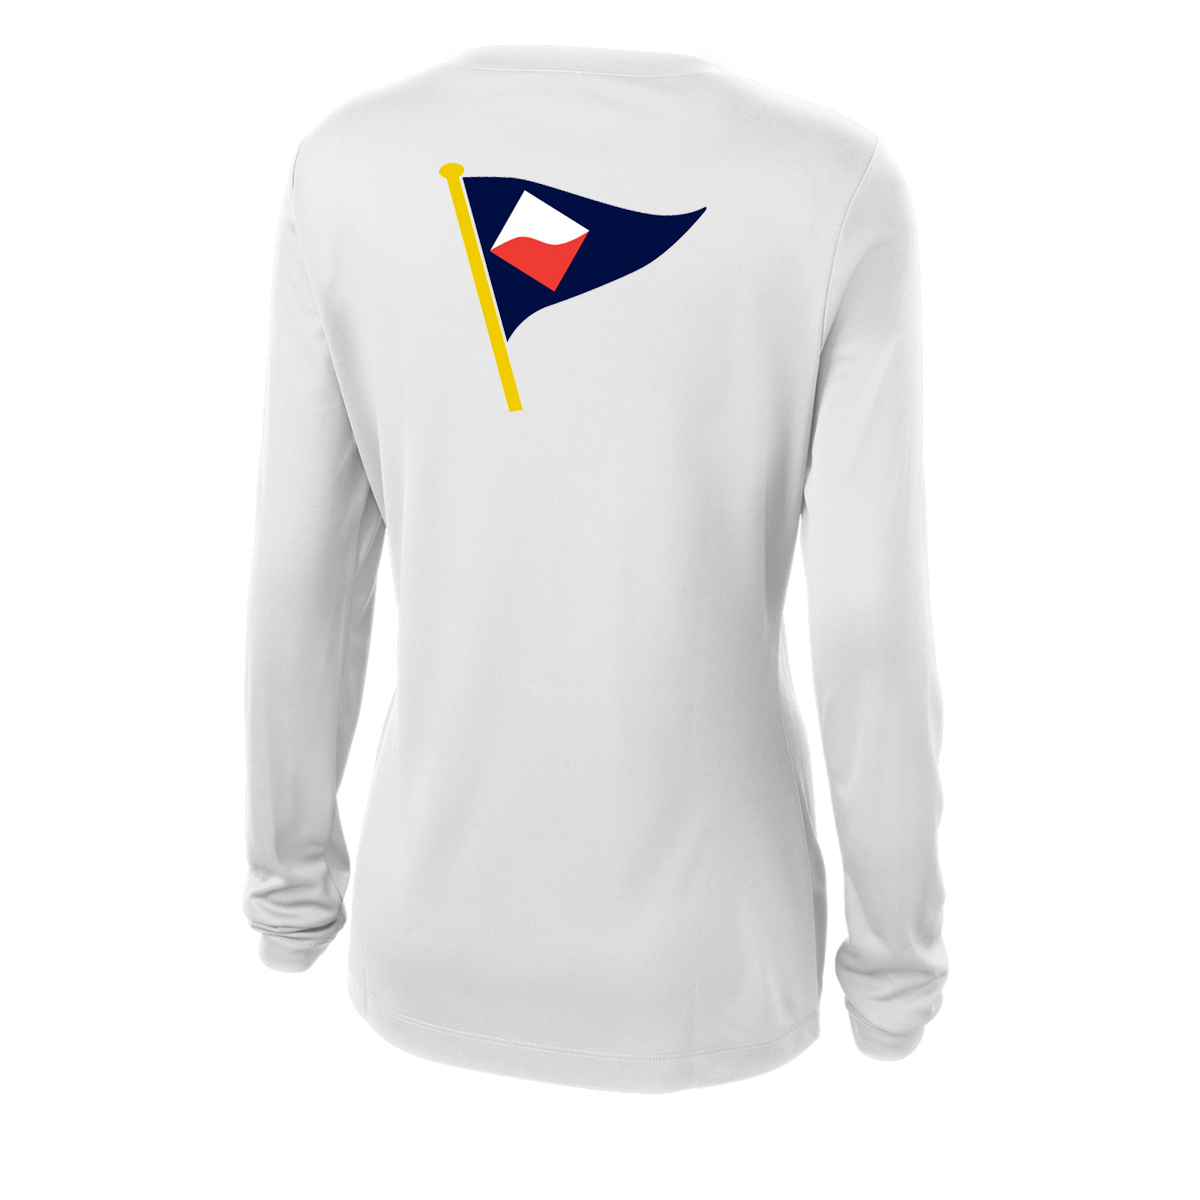 Guilford Yacht Club - Women's Long Sleeve Tech Tee